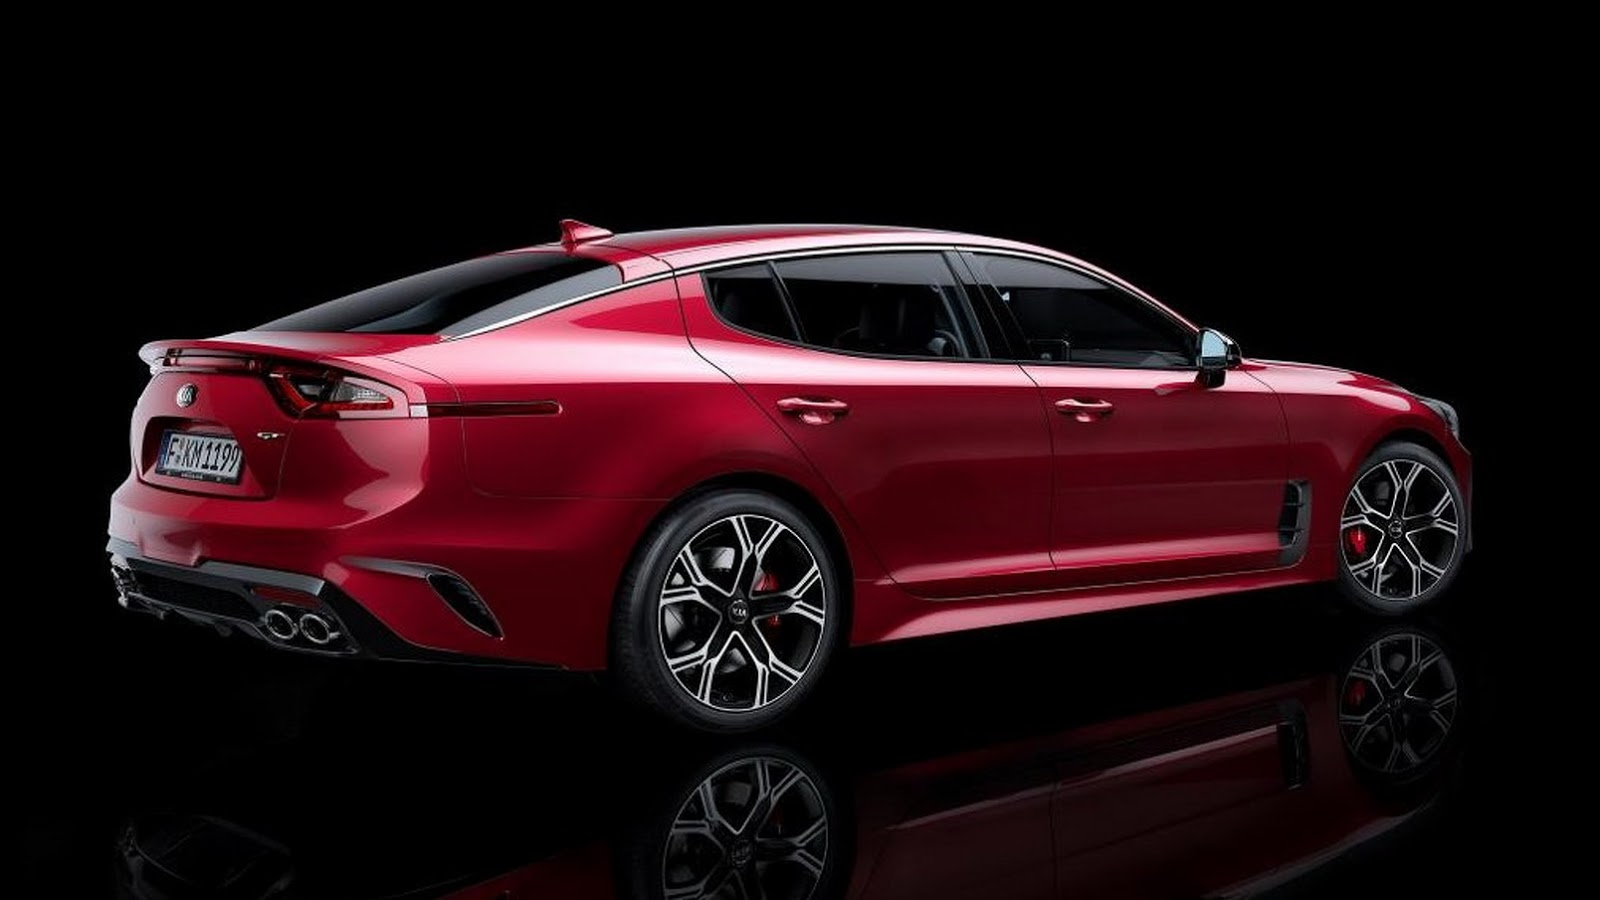 New 2018 Kia Stinger Rwd Sports Sedan Is Going After Bmw S 4 Series Gran Coupe